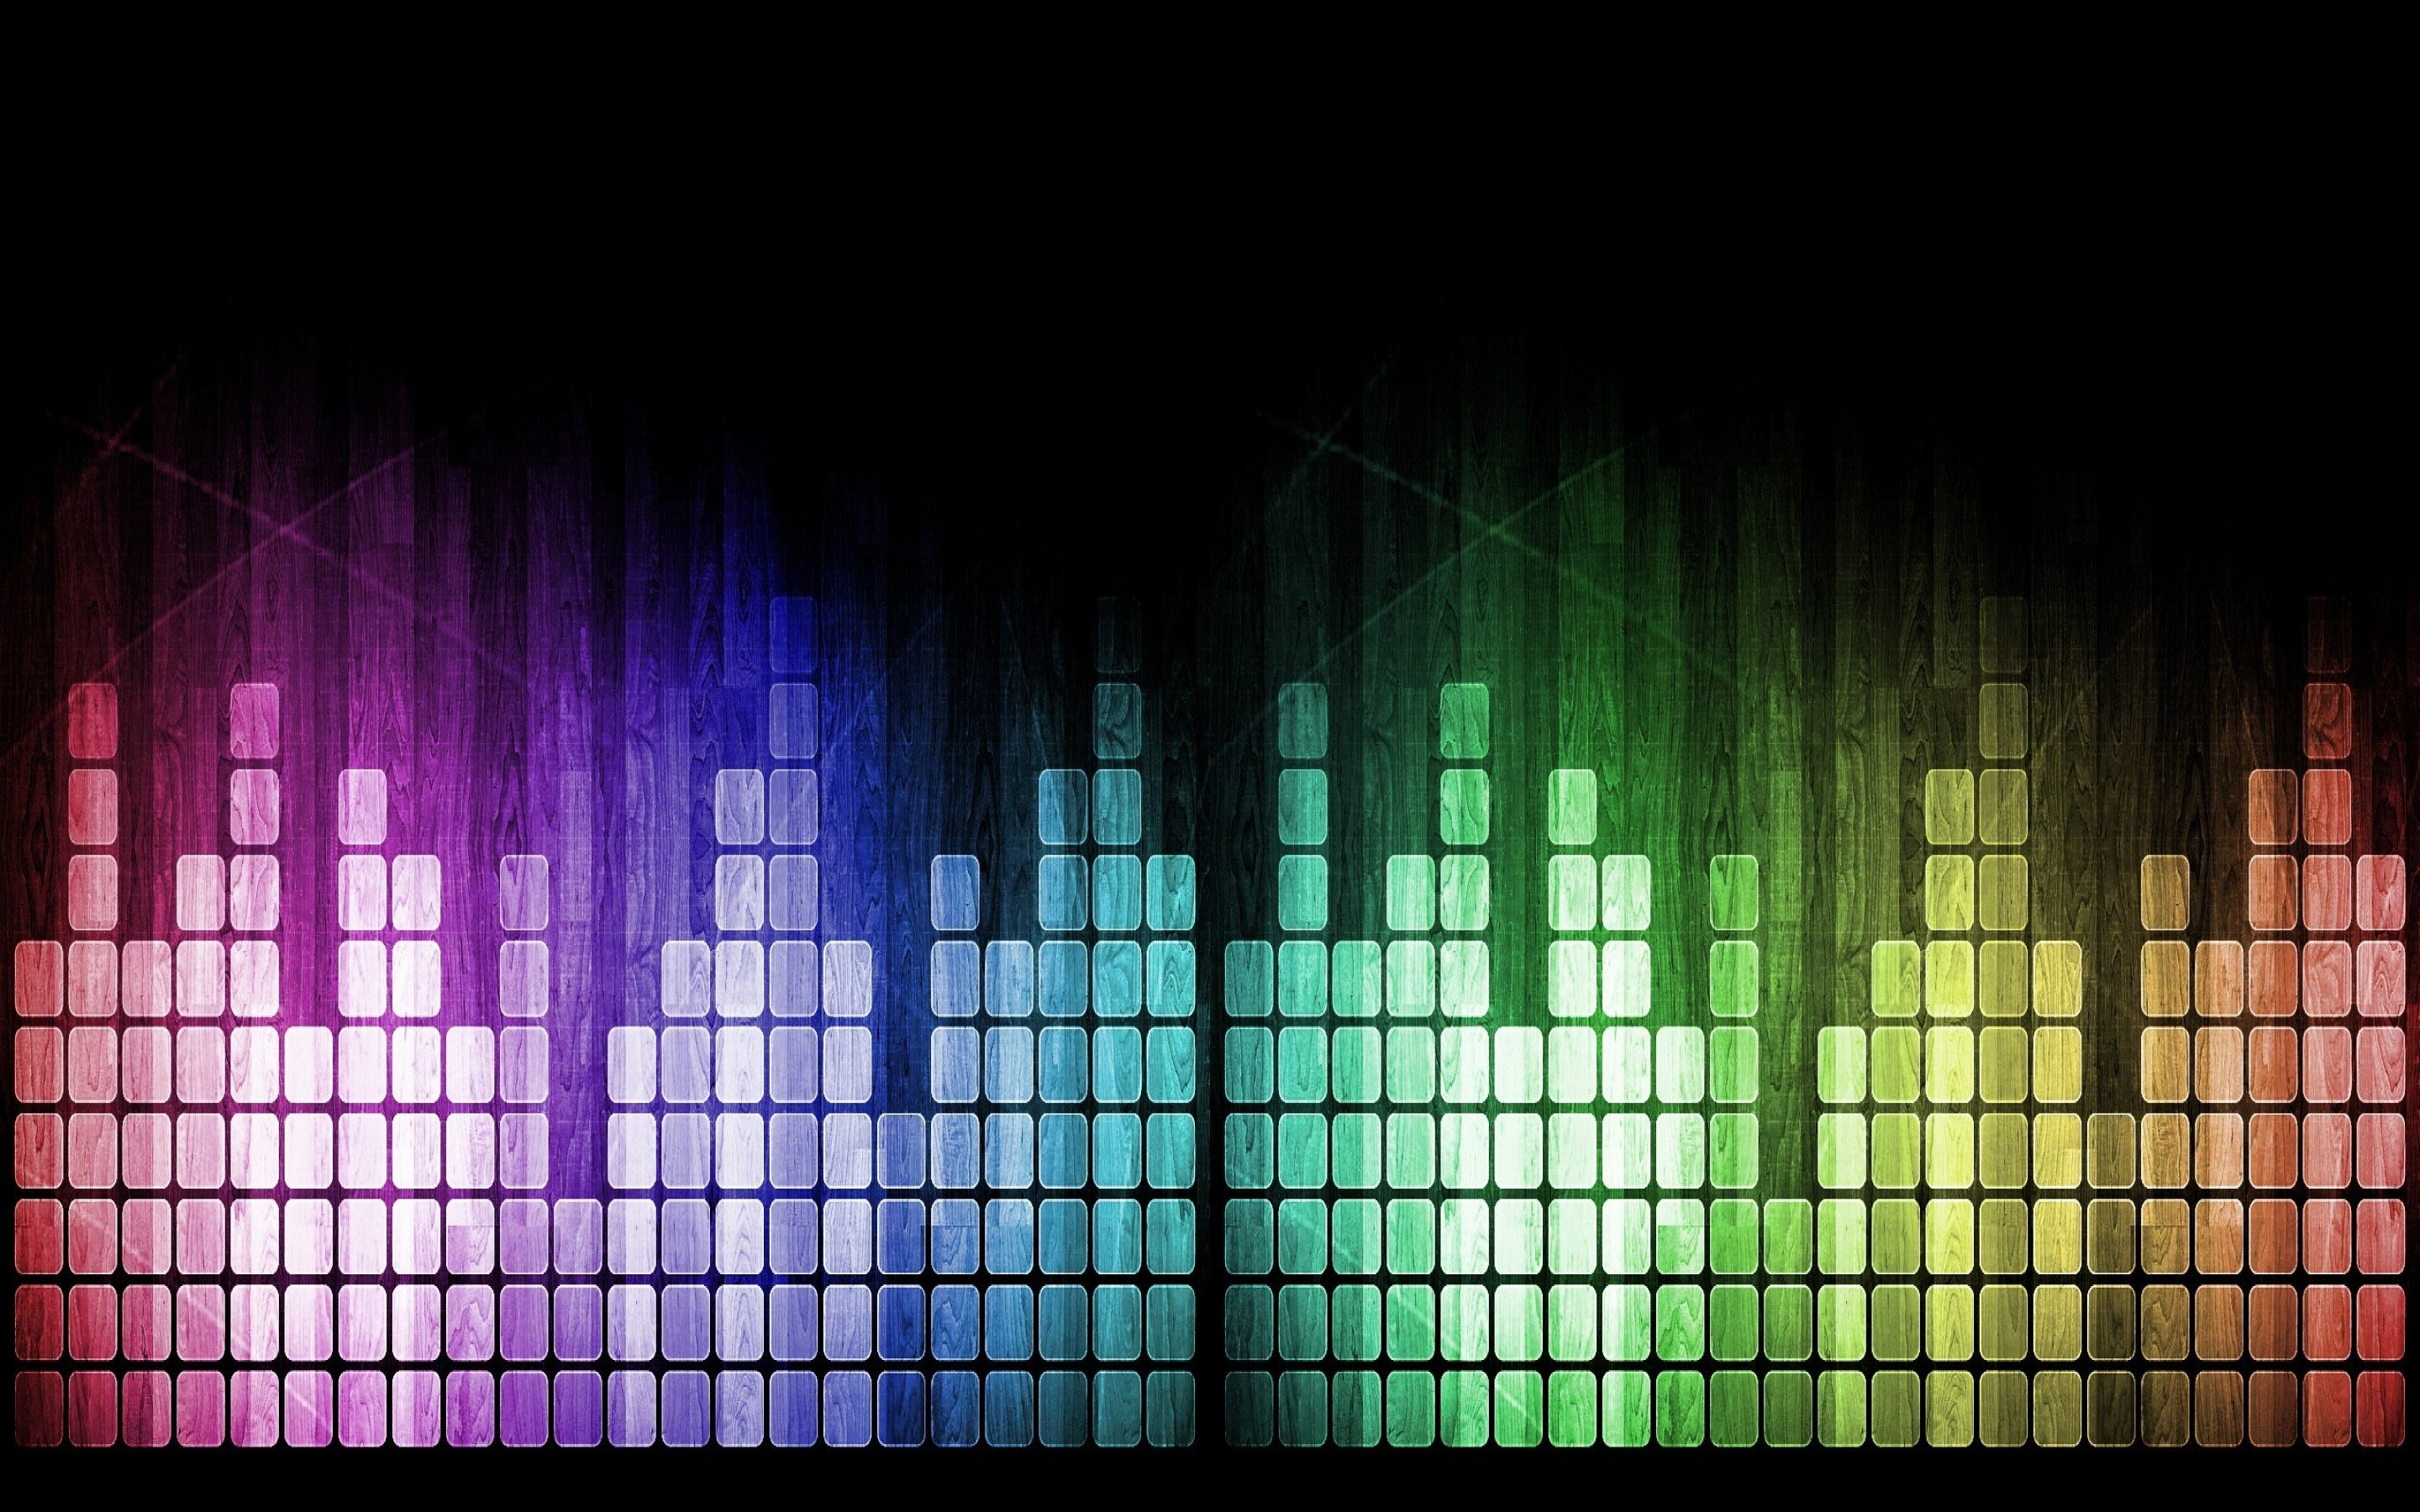 Music Wallpaper For Ipad: Background Music ·① Download Free Amazing High Resolution